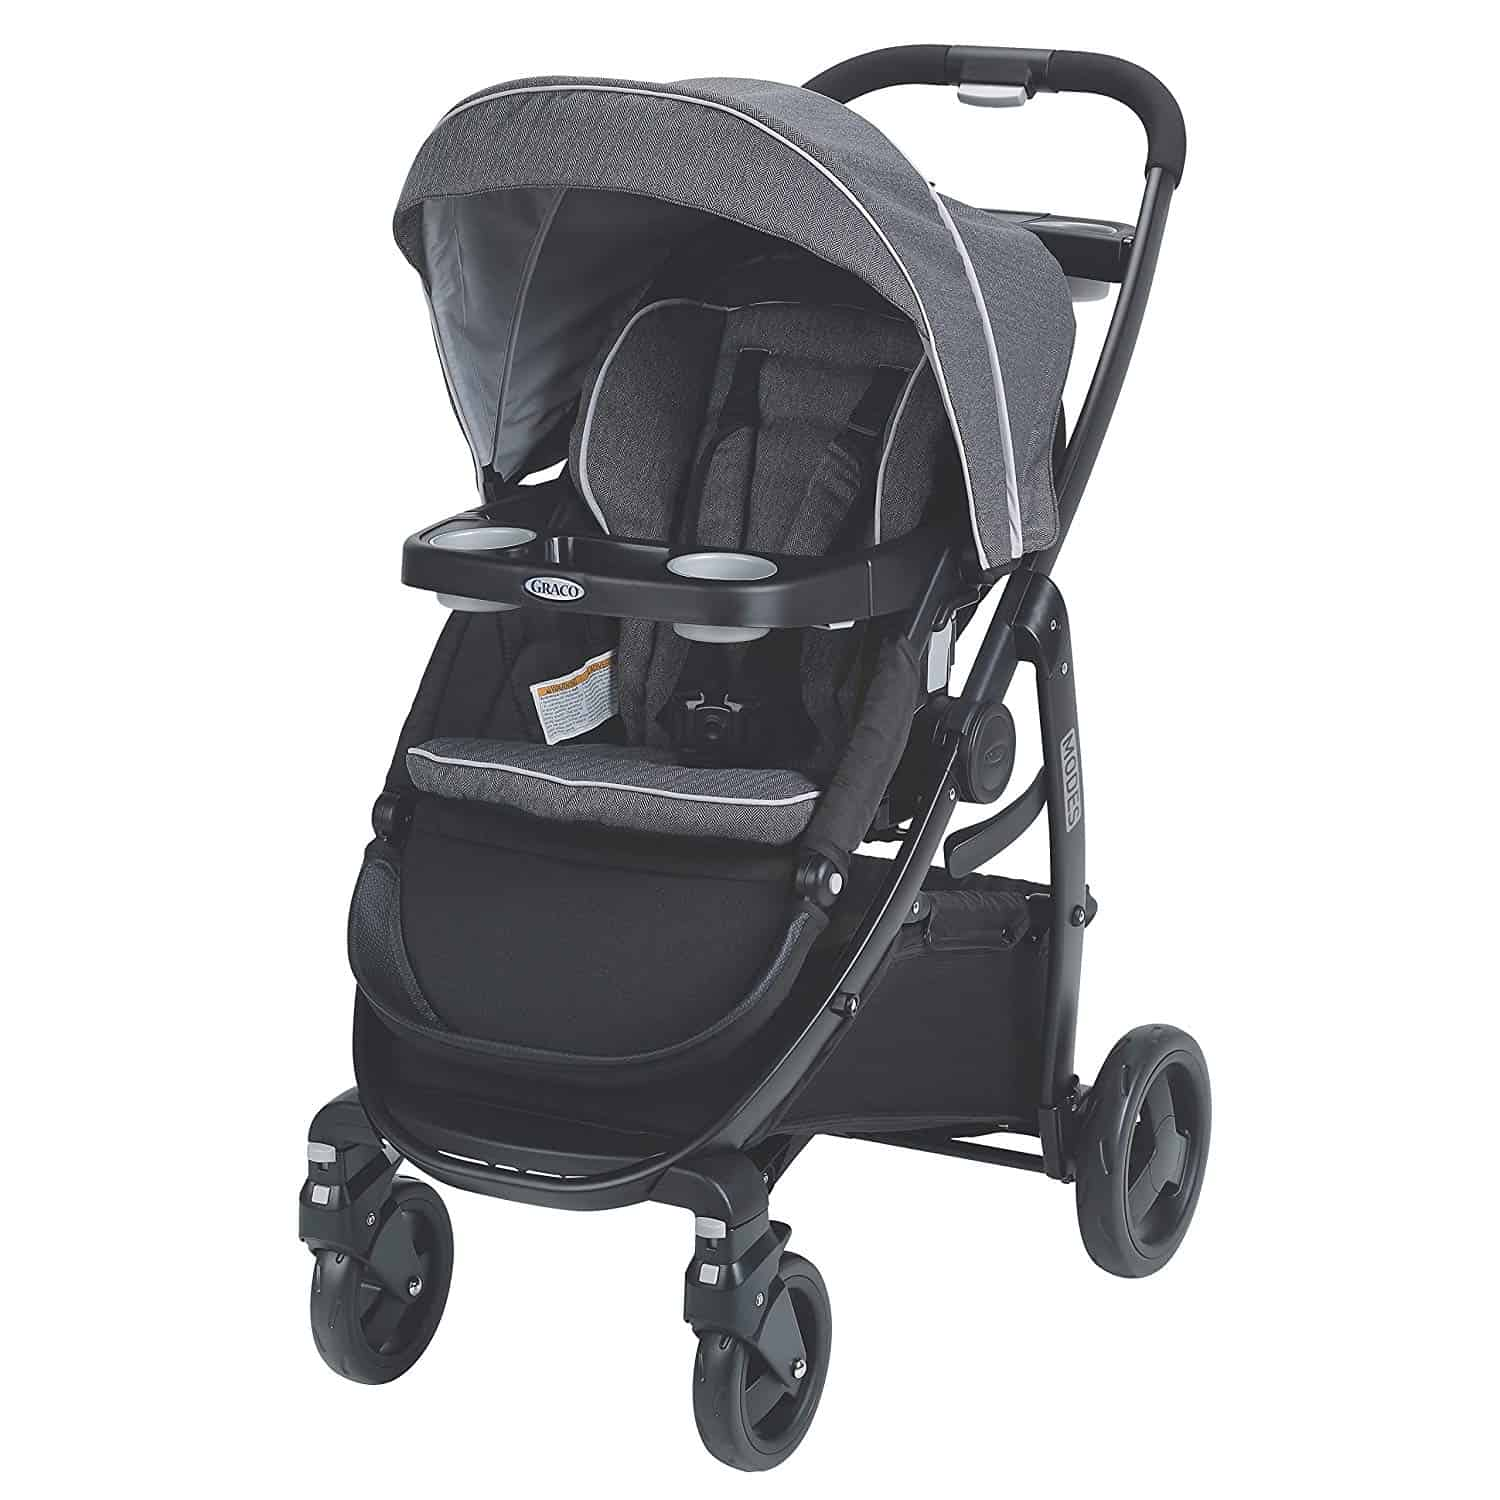 The Graco Modes Reversible Seat Stroller